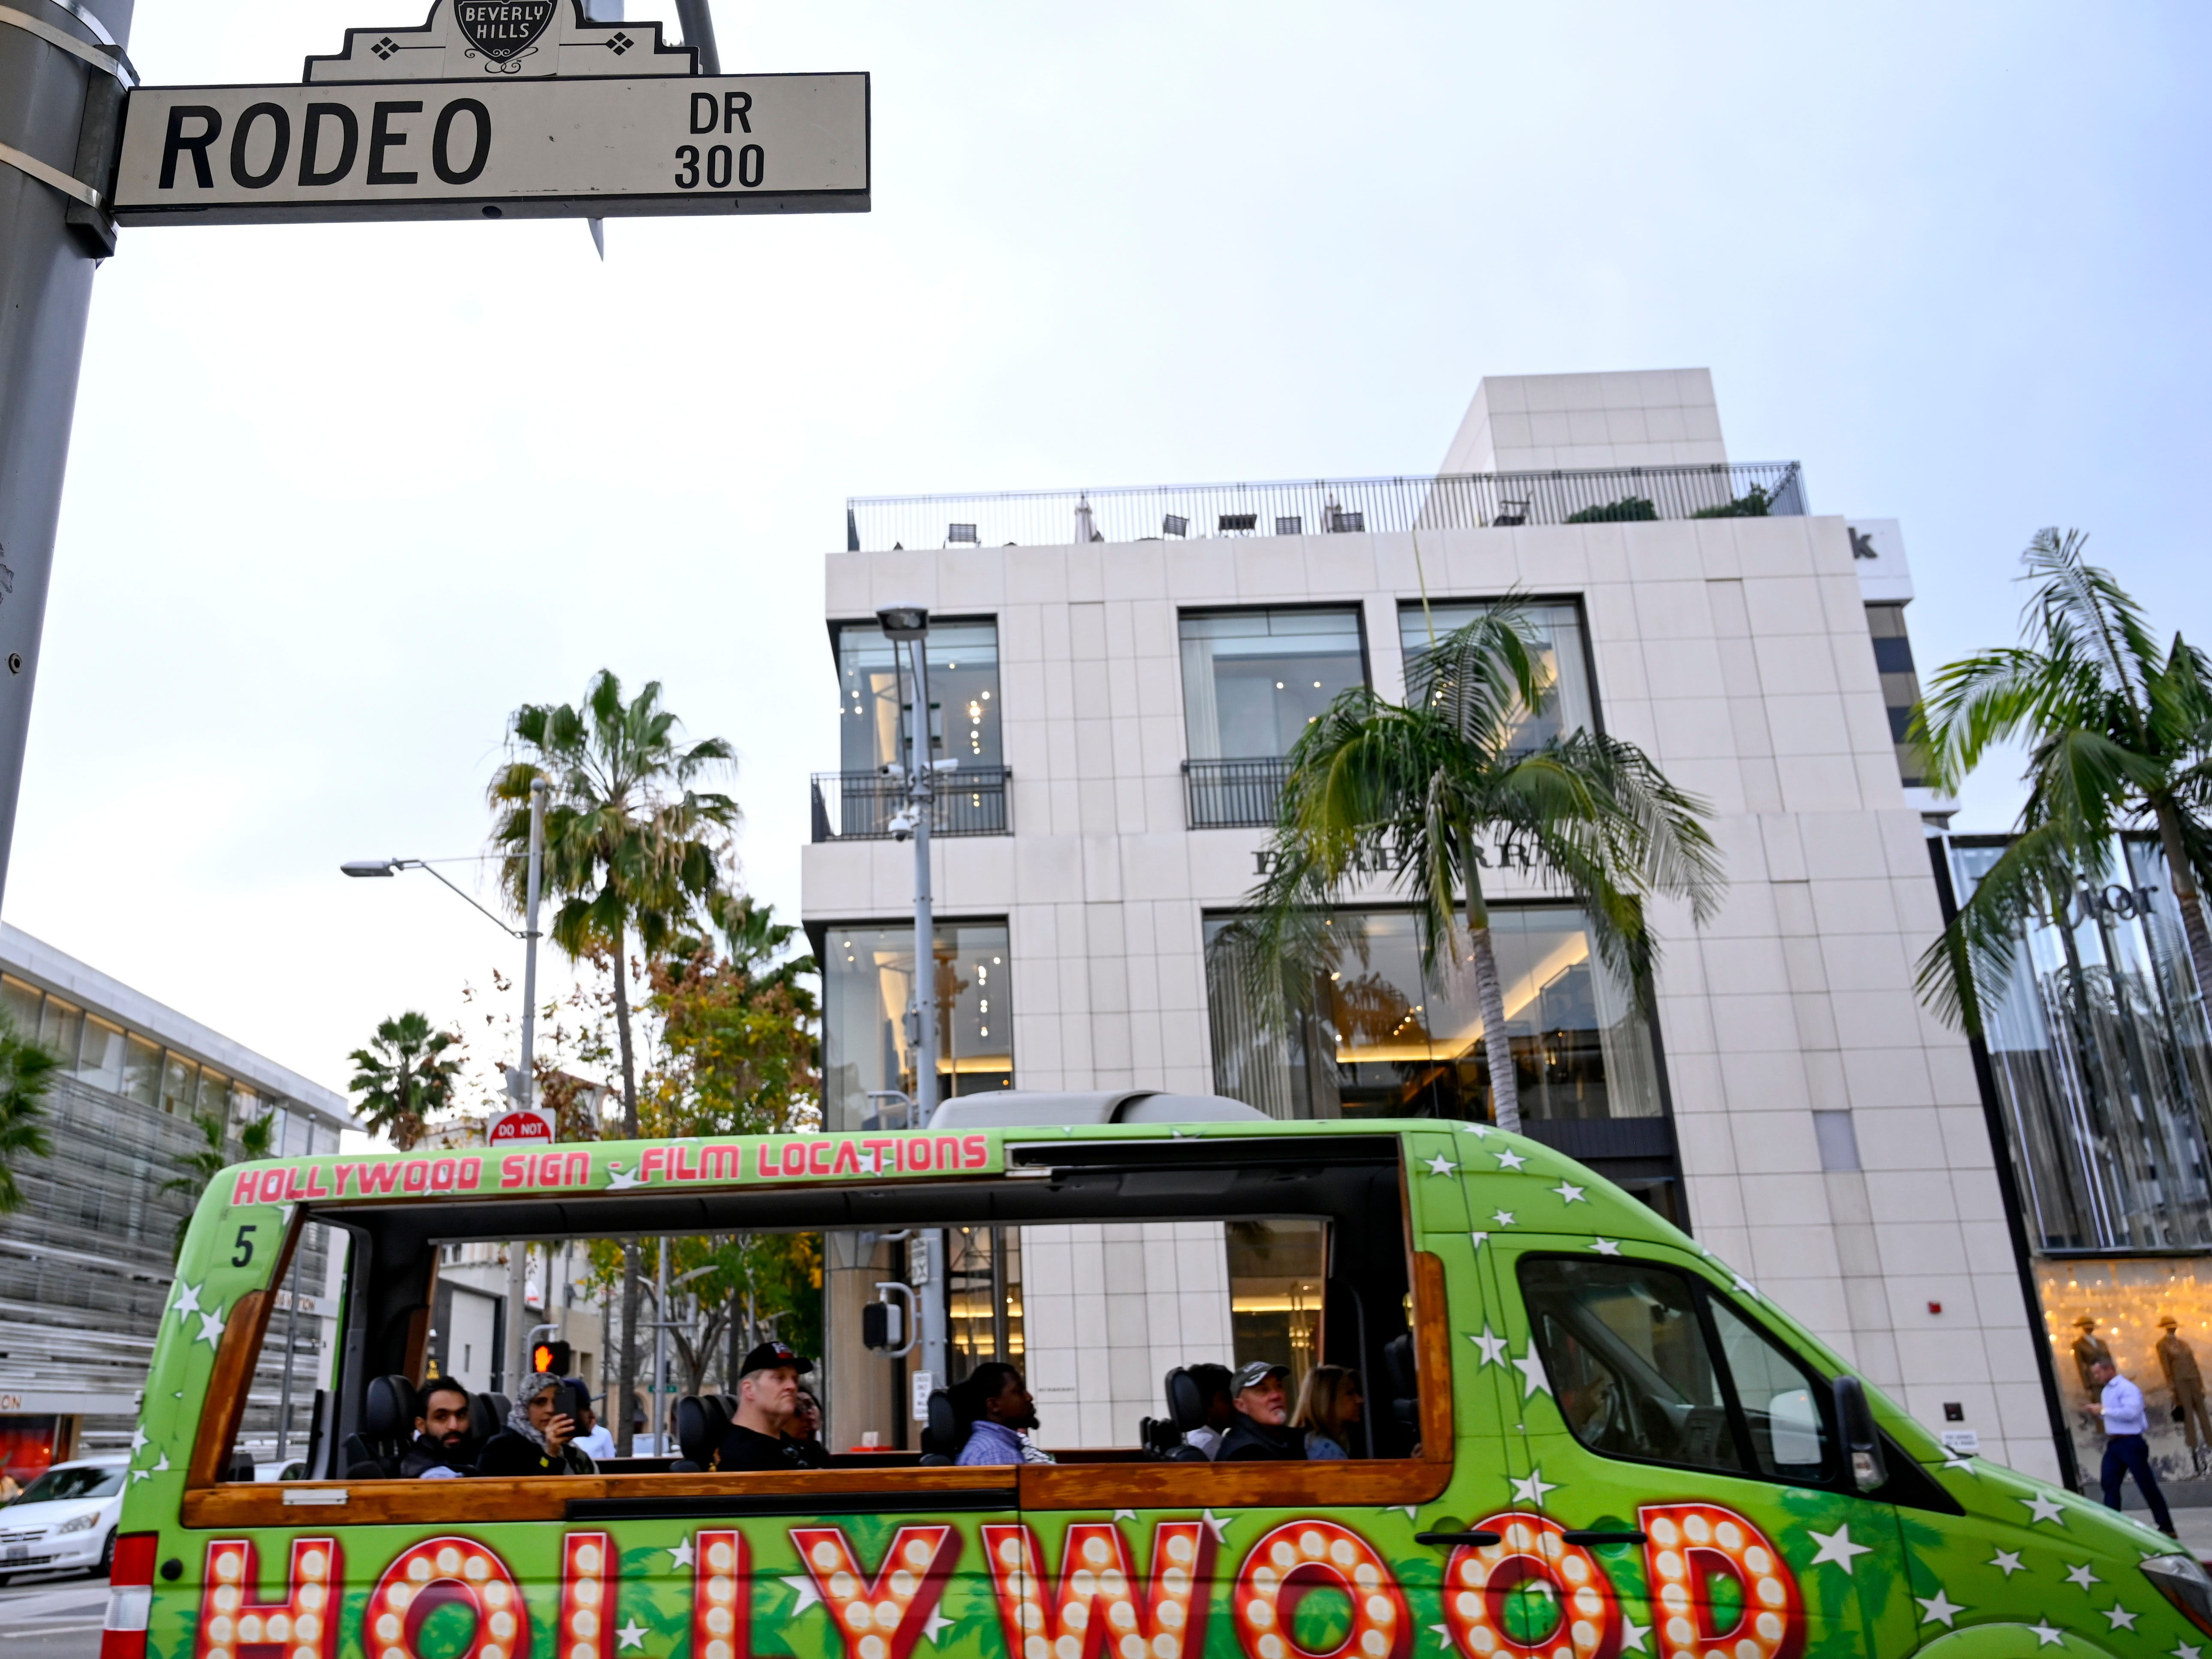 A tour bus makes its way down Rodeo Drive, Jan. 29, 2019. The Golden Triangle, as the district is called, has transformed into a must-see stop-off for out-of-towners, right along with the stars' handprints at Hollywood's TCL Chinese Theatre or the street performances at Venice Beach.